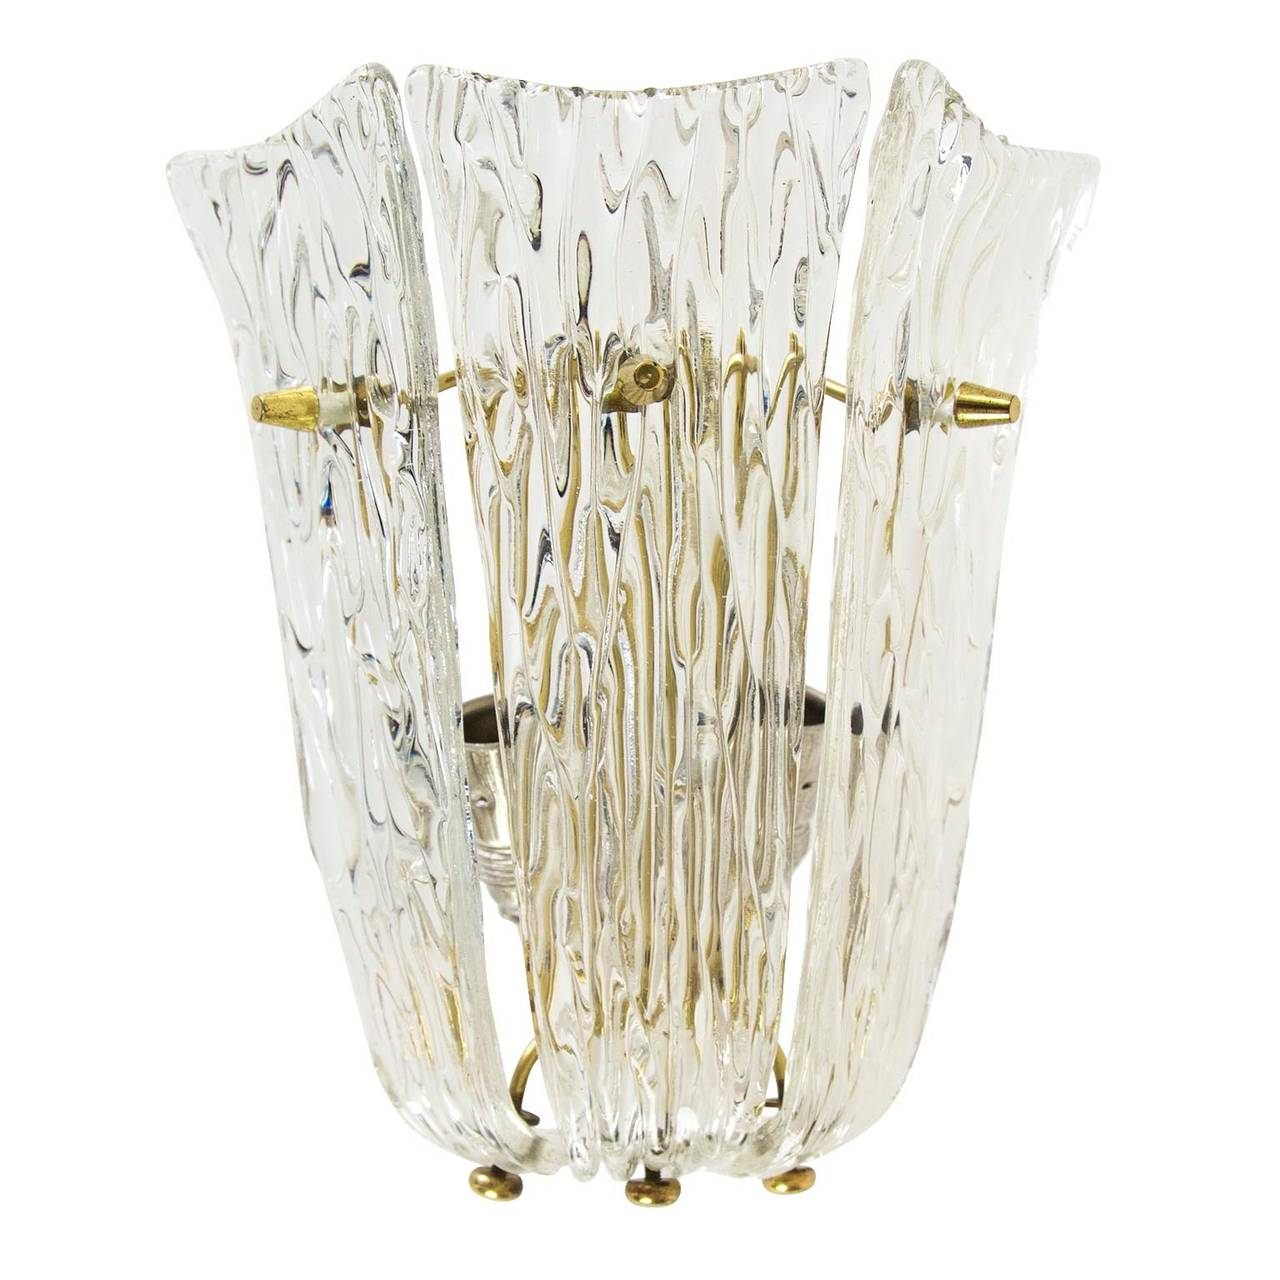 Mid-Century Modern One of Three Textured Glass And Brass Wall Sconces by J.T. Kalmar, 1950s For Sale